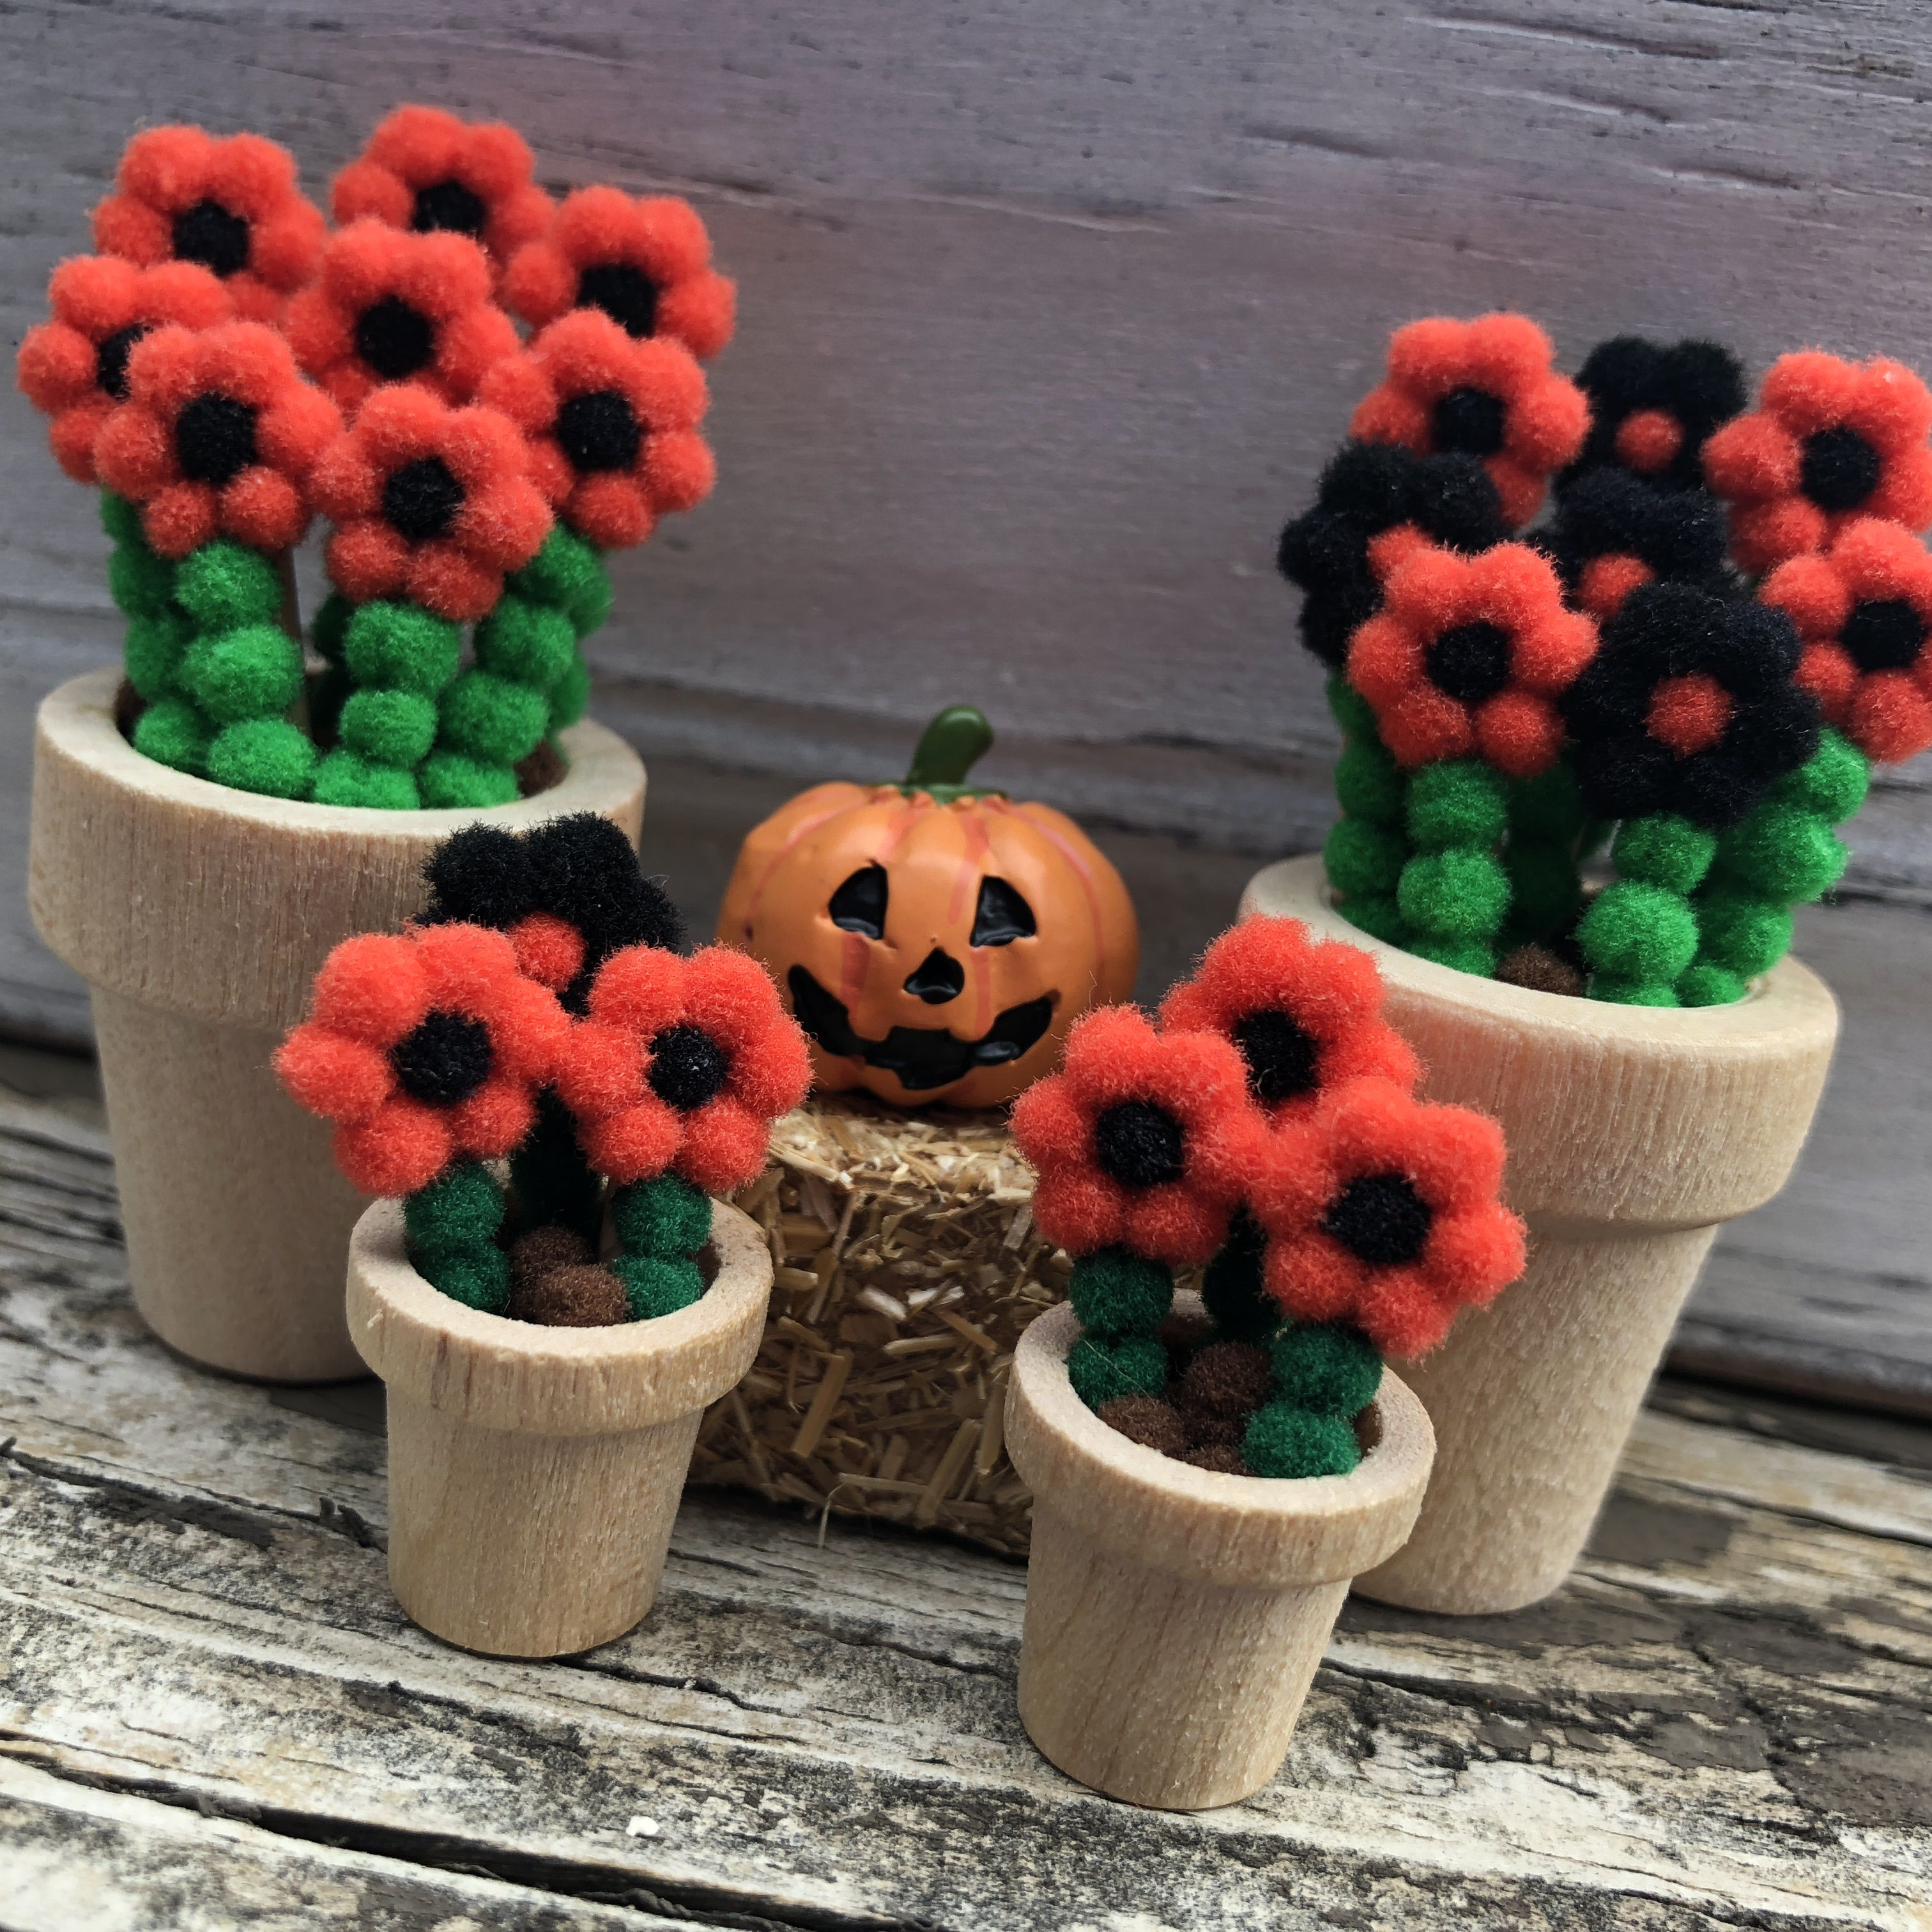 125 And 2 Inch Flowers For Halloween I Want Halloween Spooky